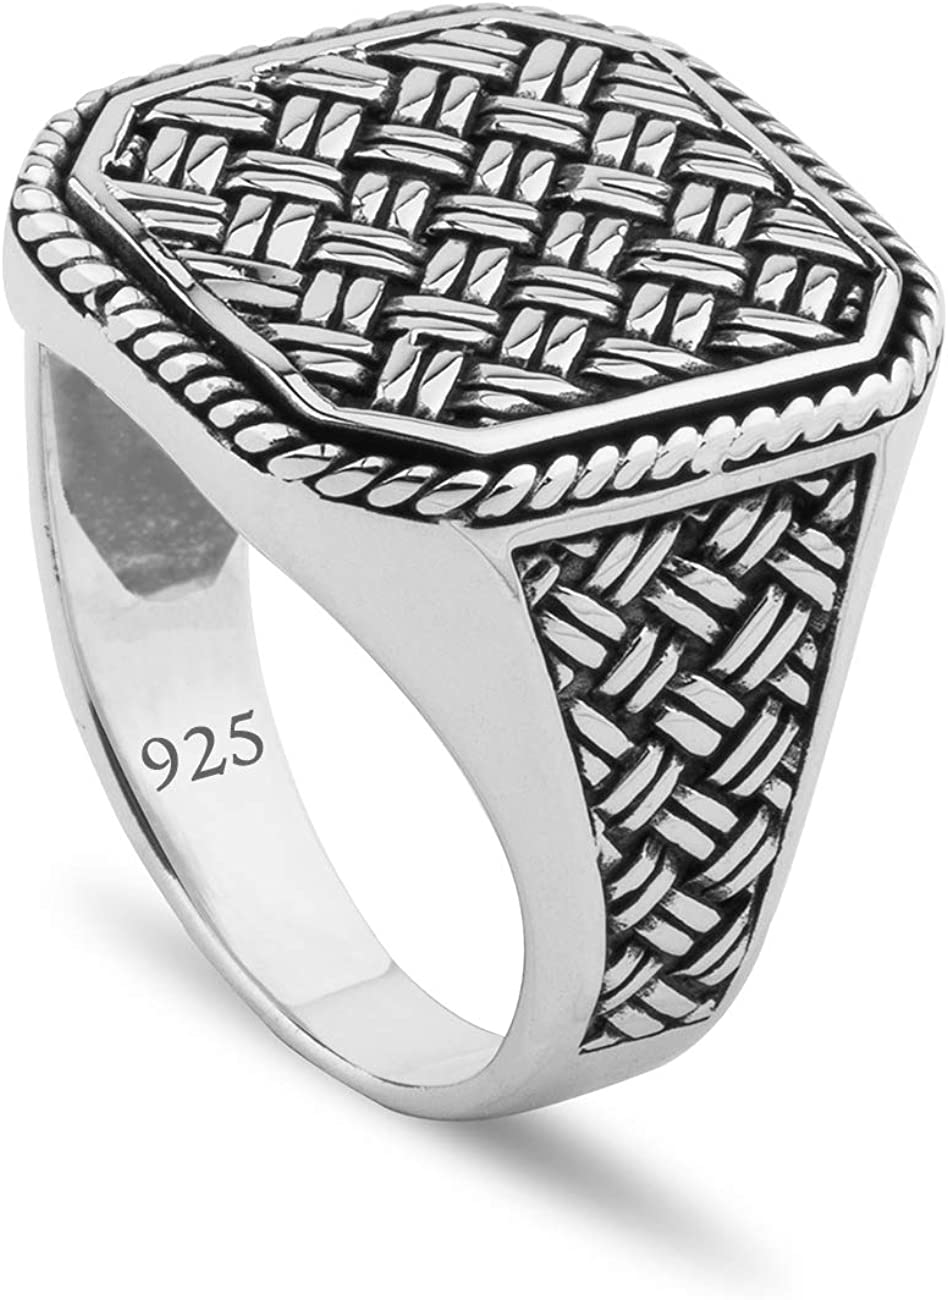 Handmade 925 Sterling Silver chevron ring with Black Onyx stone and star motive